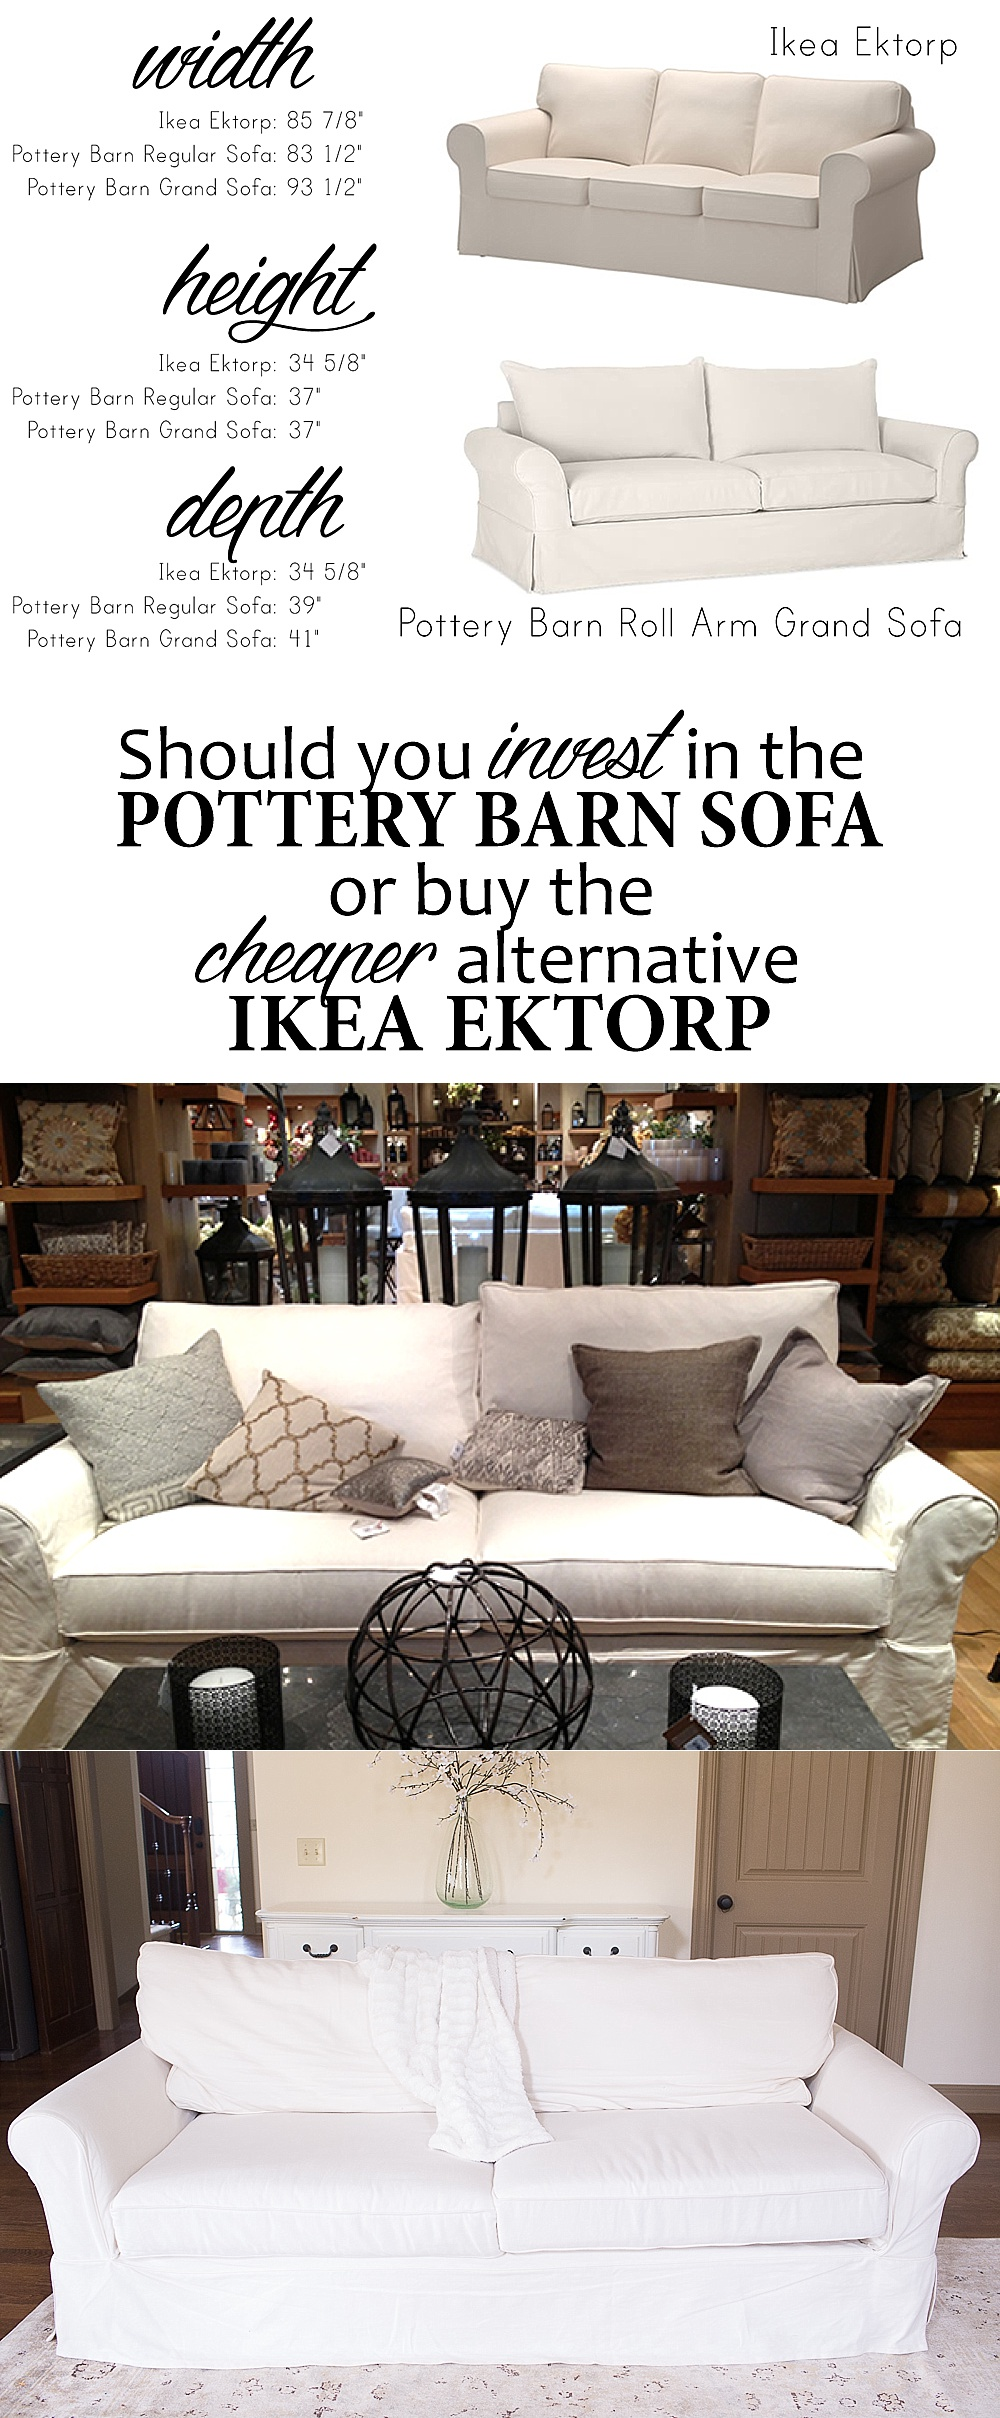 Ektorp Sofa Vittaryd White How To Choose A Sofa Ikea Ektorp Sofa Vs Pottery Barn Grand Sofa